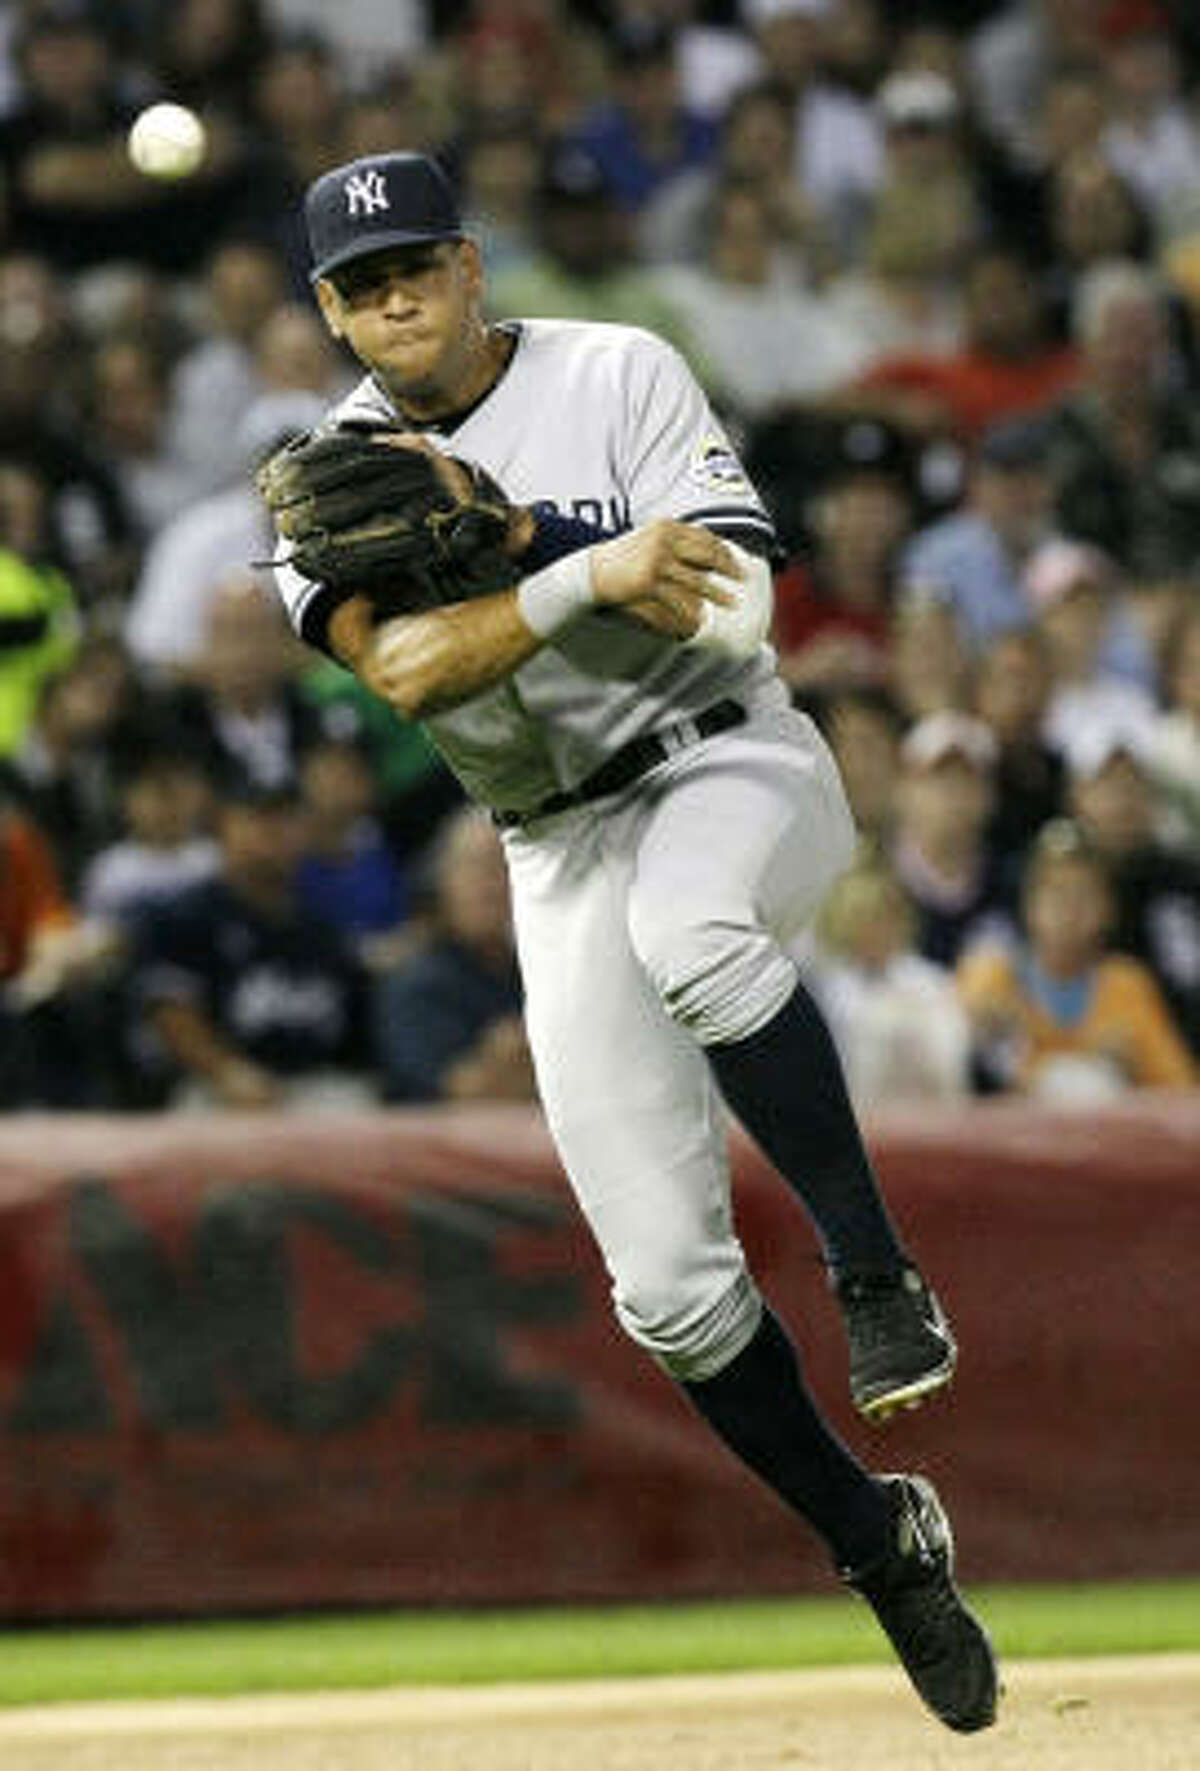 MLB: Alex Rodriguez The tabloid favorite lives the high life with his $32 million salary from the Yankees as part of a $275 million decade-long deal.